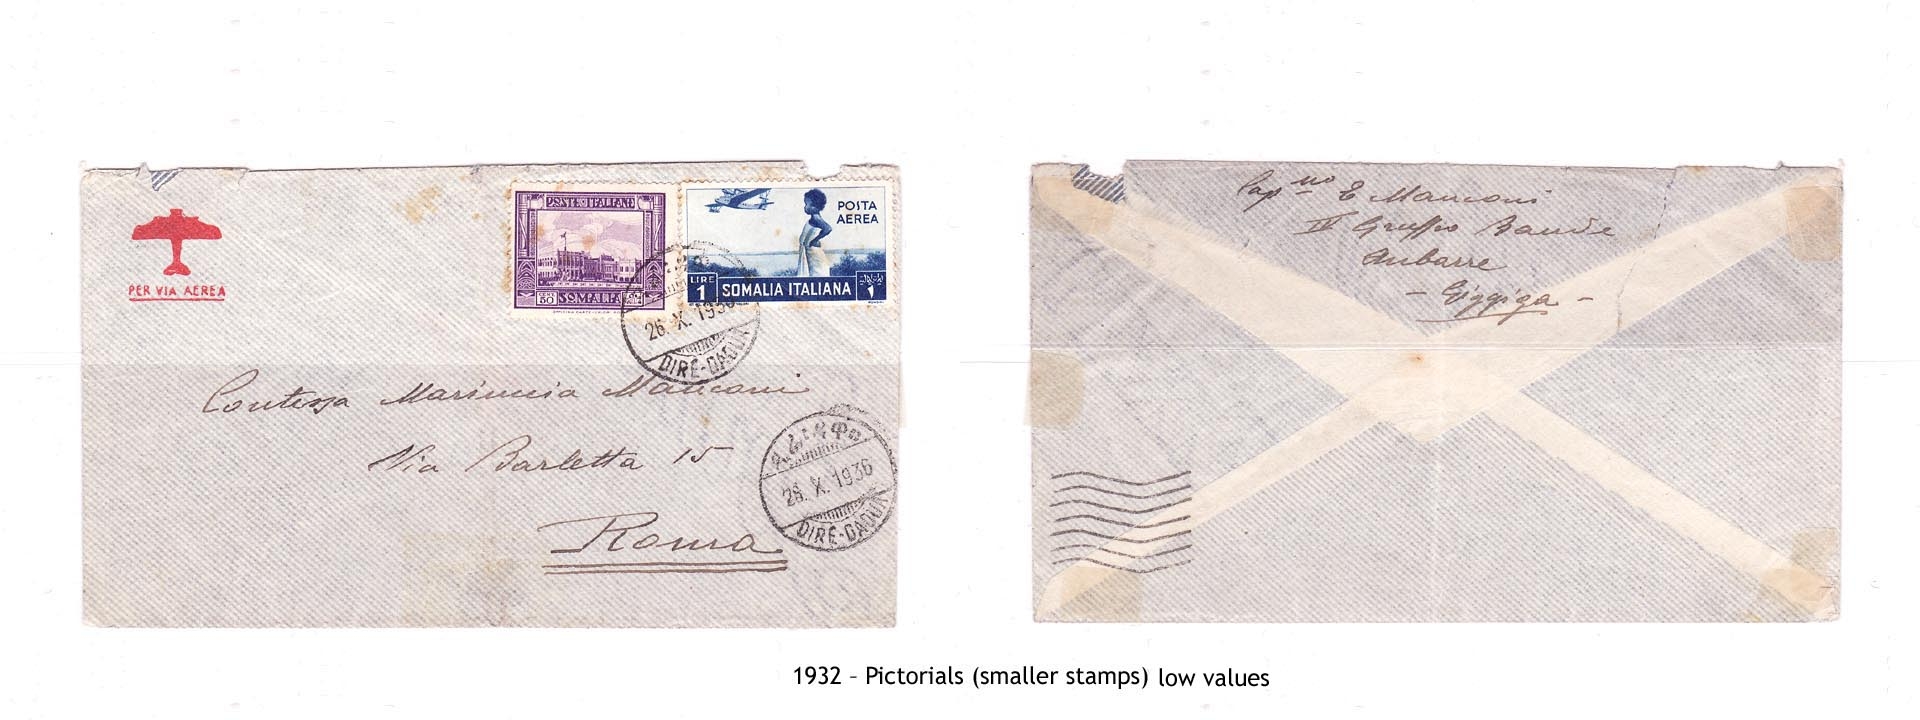 1932 – Somalia Pictorials (smaller stamps) low values